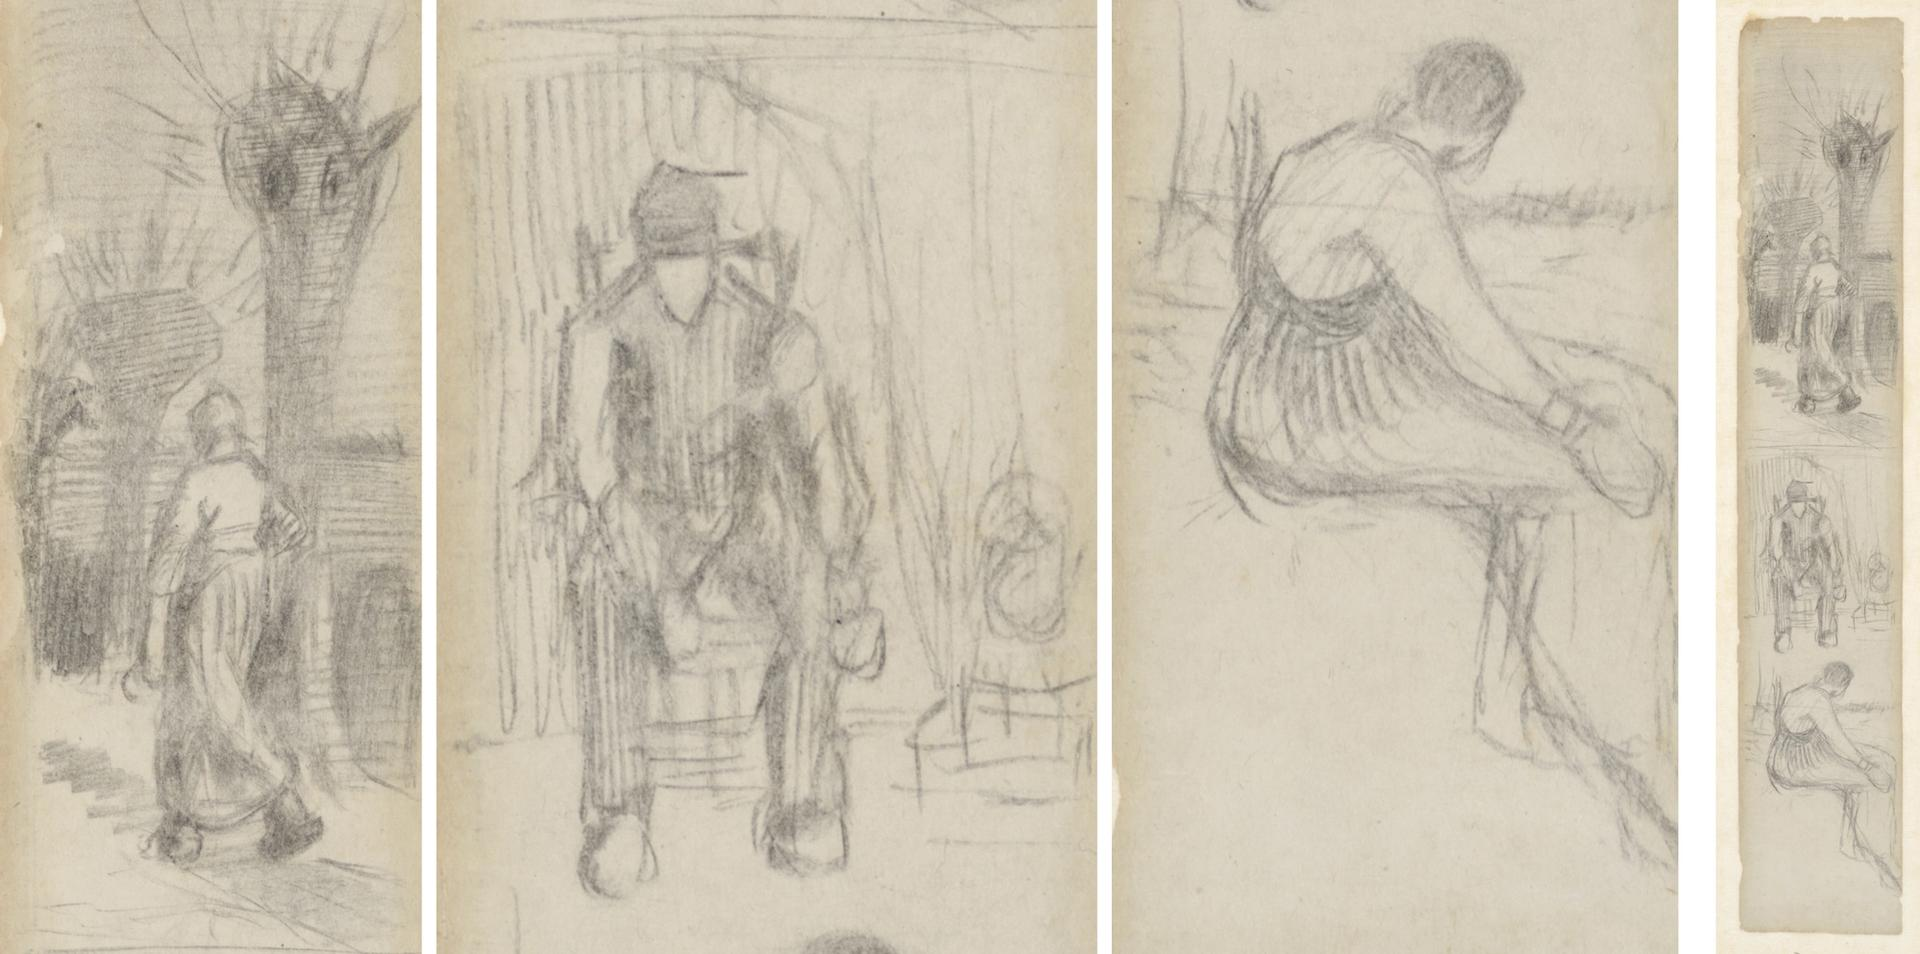 The left three images show close-ups of the newly discovered bookmark by Van Gogh, shown in full on the right Courtesy of the Van Gogh Museum, Amsterdam (bought with support from BankGiro Loterij)